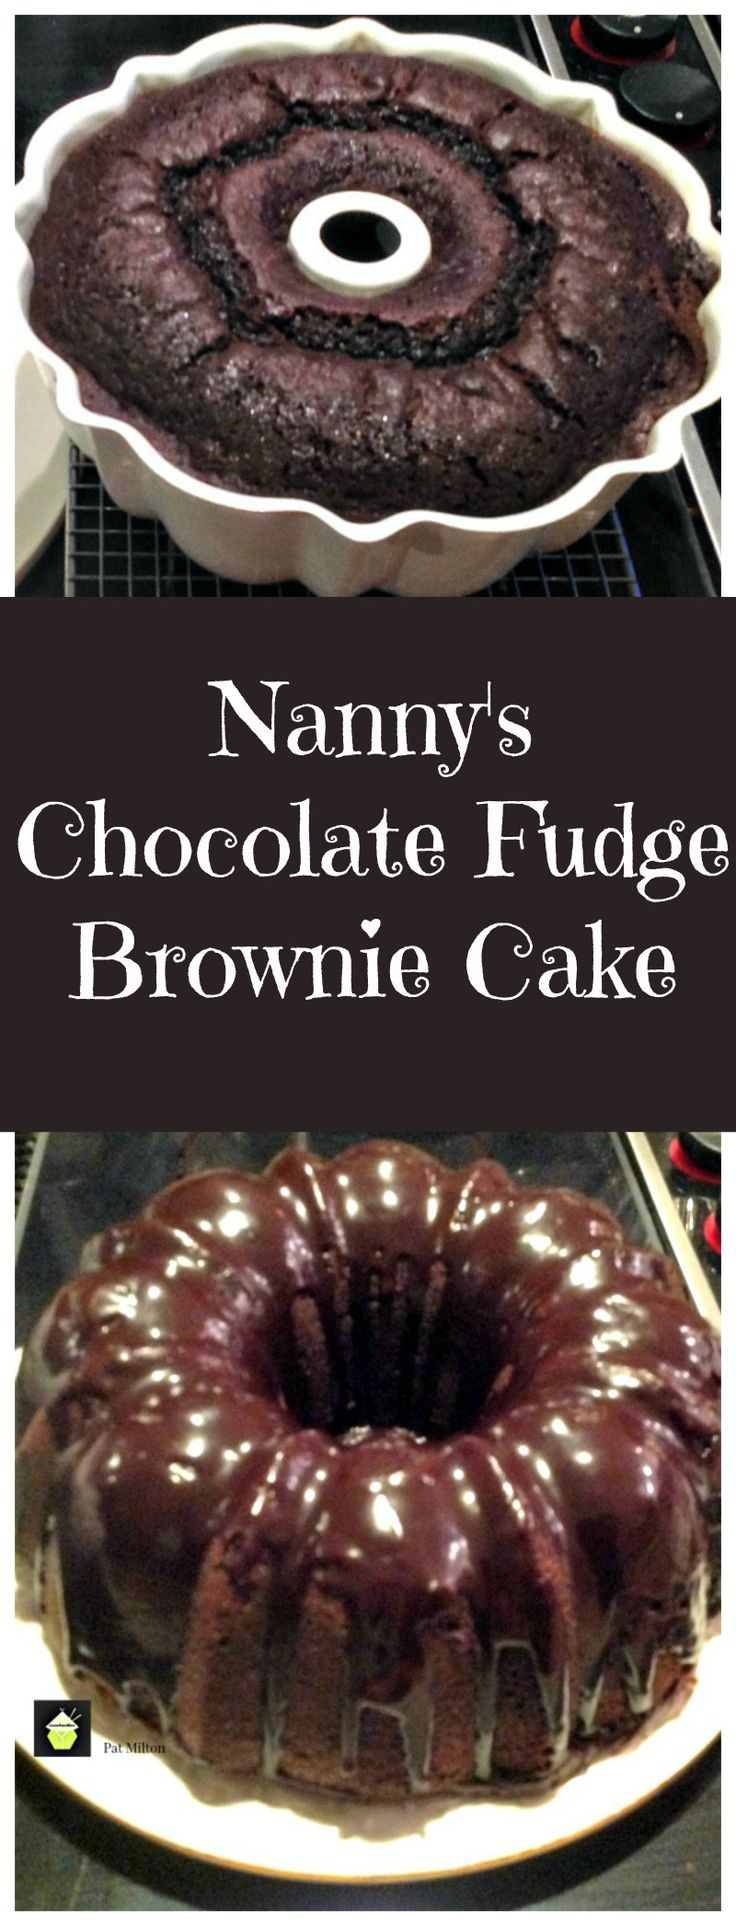 Nanny's Chocolate Fudge Brownie Cake is a keeper recipe! Easy to make and…